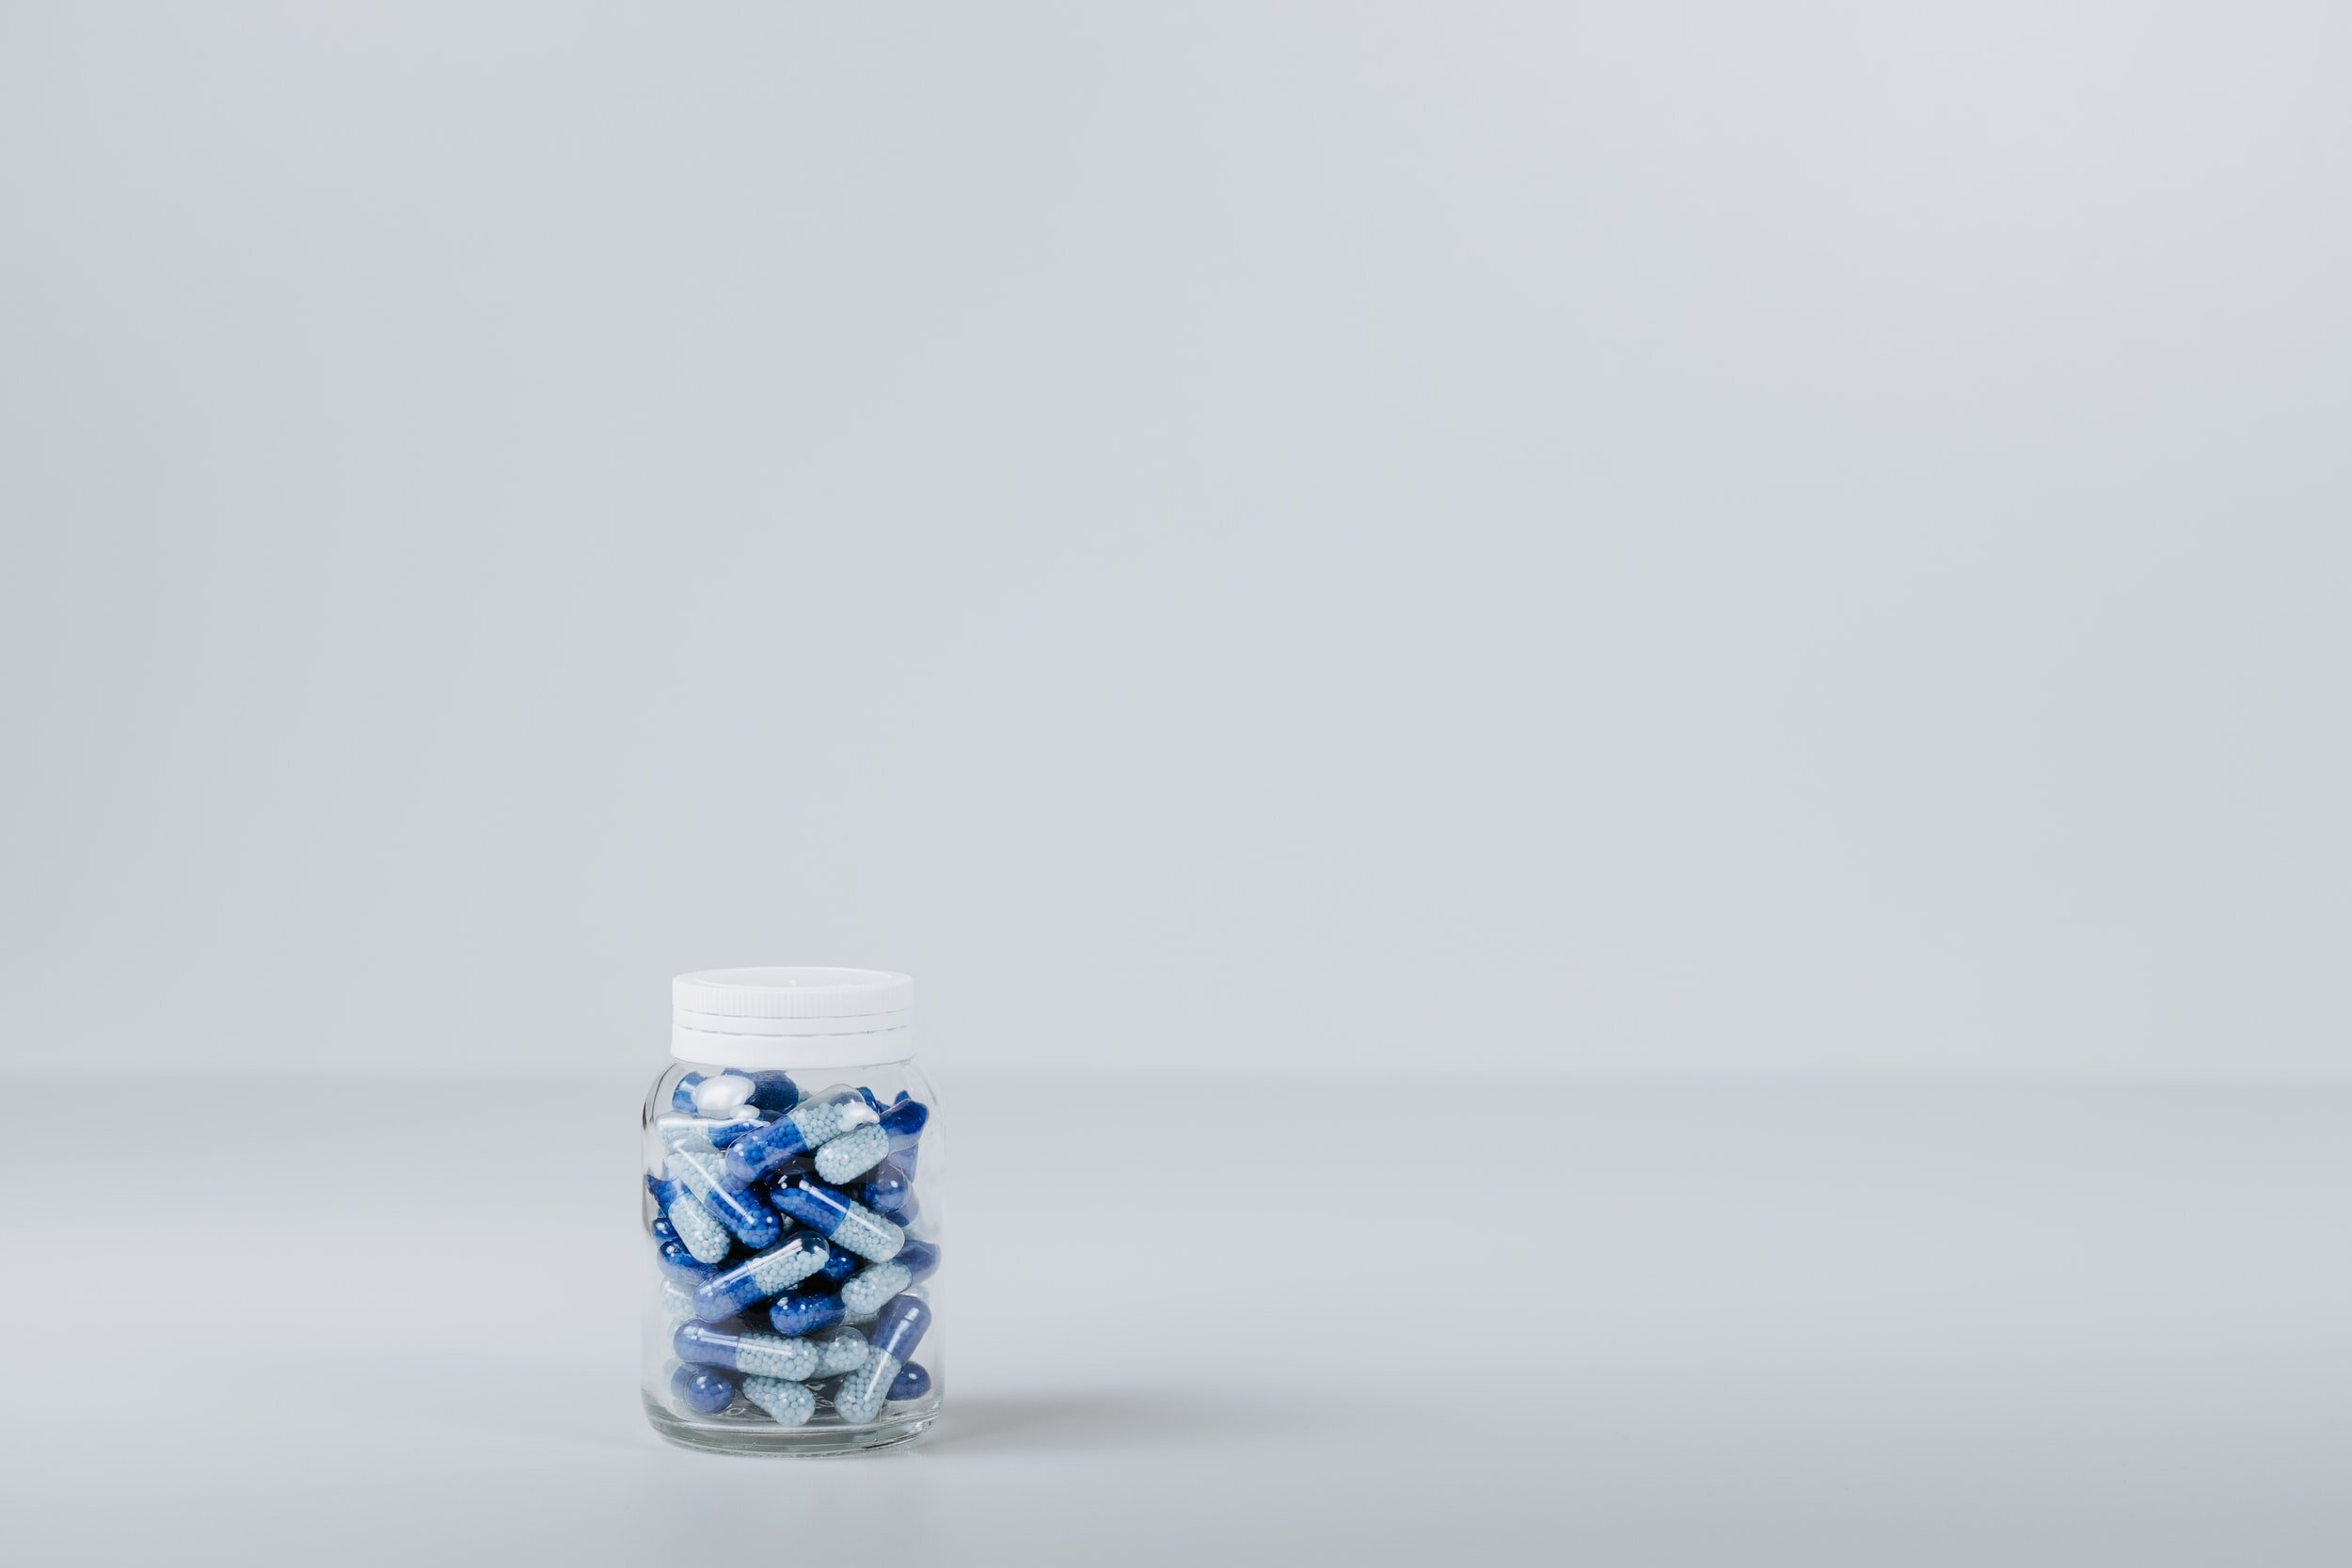 Opioid Use Disorder Plagues over 2 million Americans -